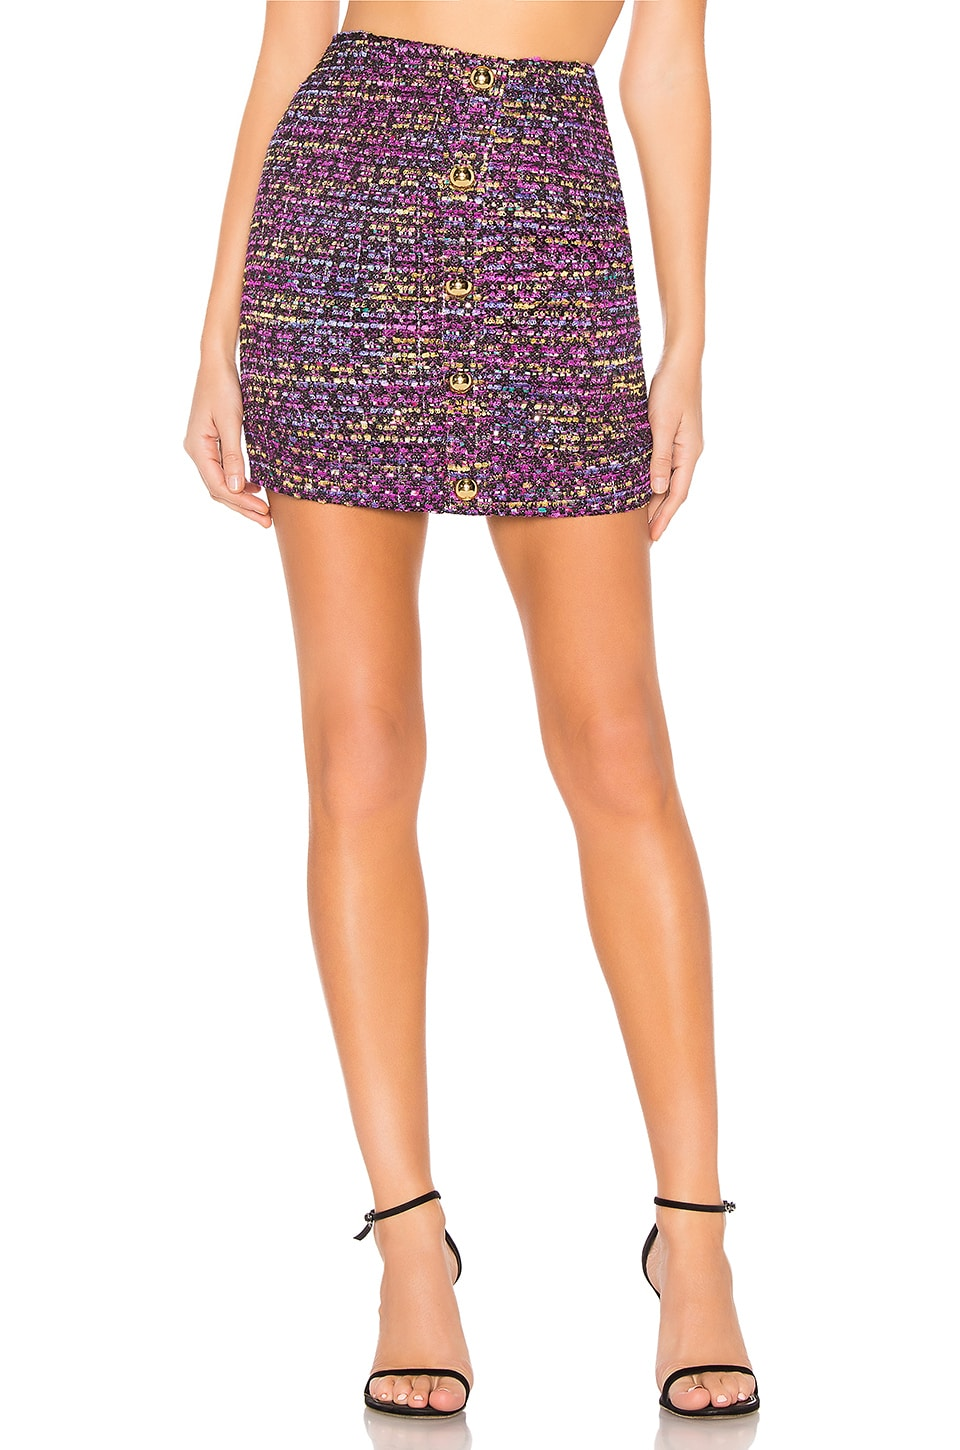 Lovers + Friends Lennon Mini Skirt in Rainbow Tweed